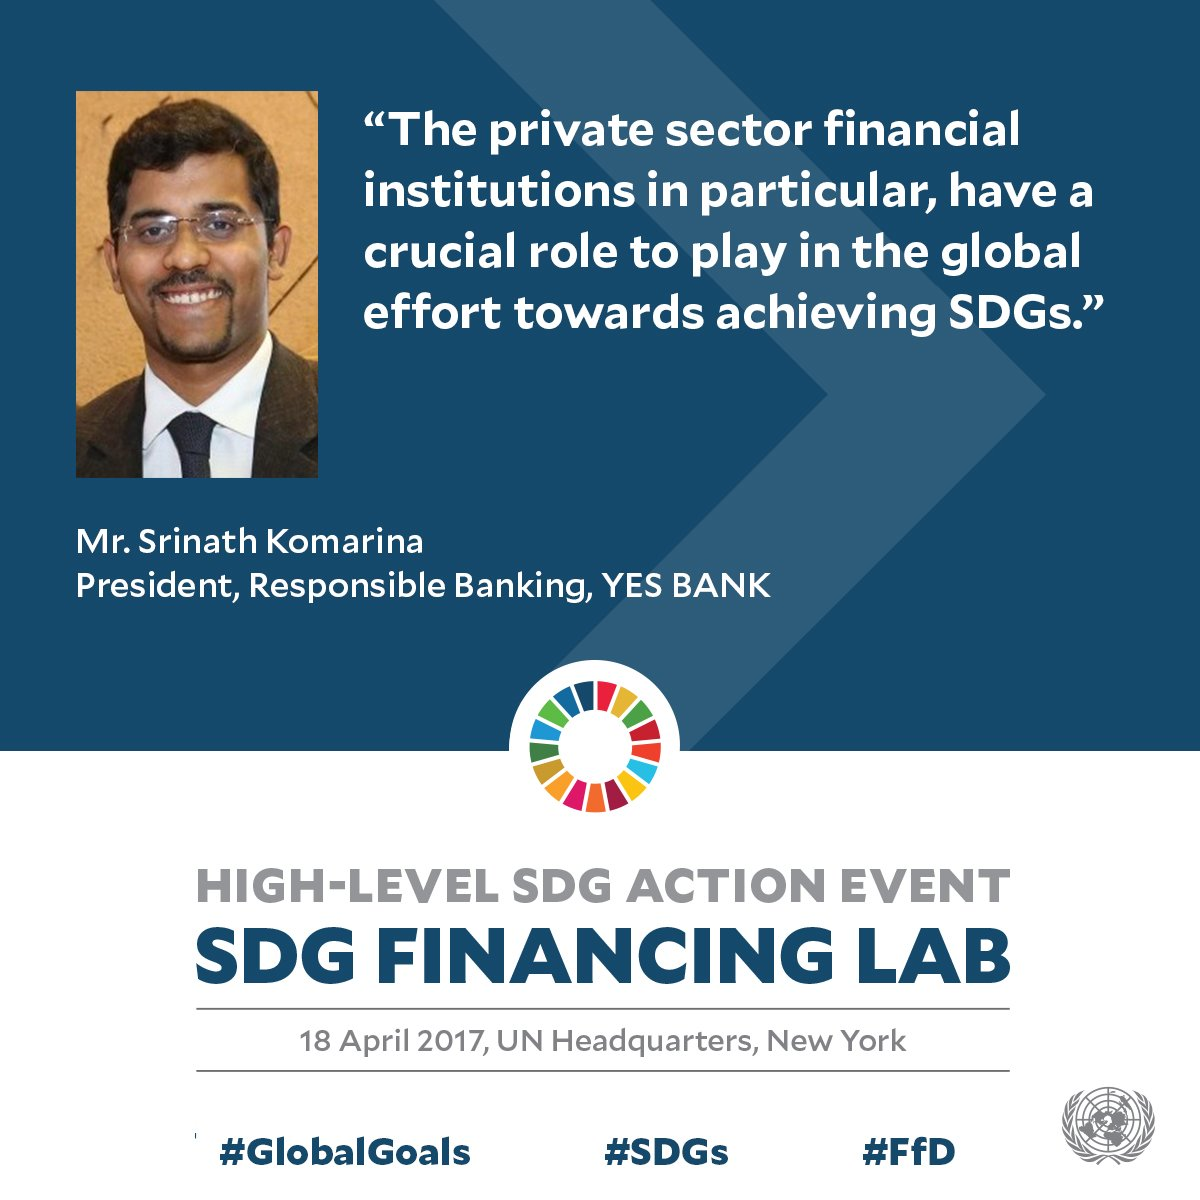 Private sector has vital role in achieving #SDGs through innovative financing - @kvsrinath of @yesbank at #SDGfinancing lab #ffd https://t.co/Df4SVp66pg